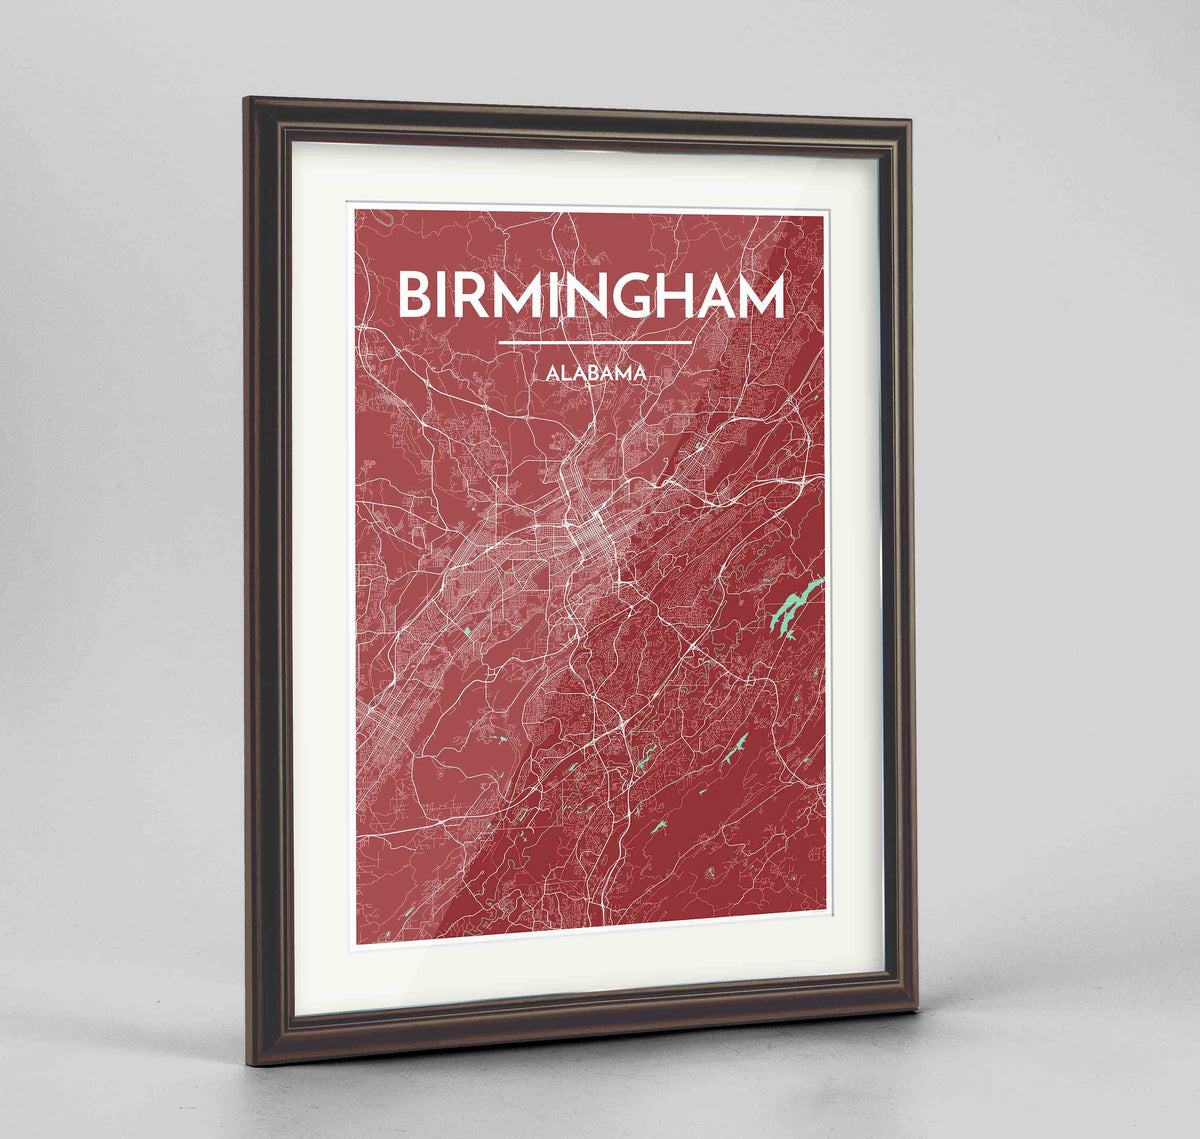 "Framed Birmingham - Alabama Map Art Print 24x36"" Traditional Walnut frame Point Two Design Group"